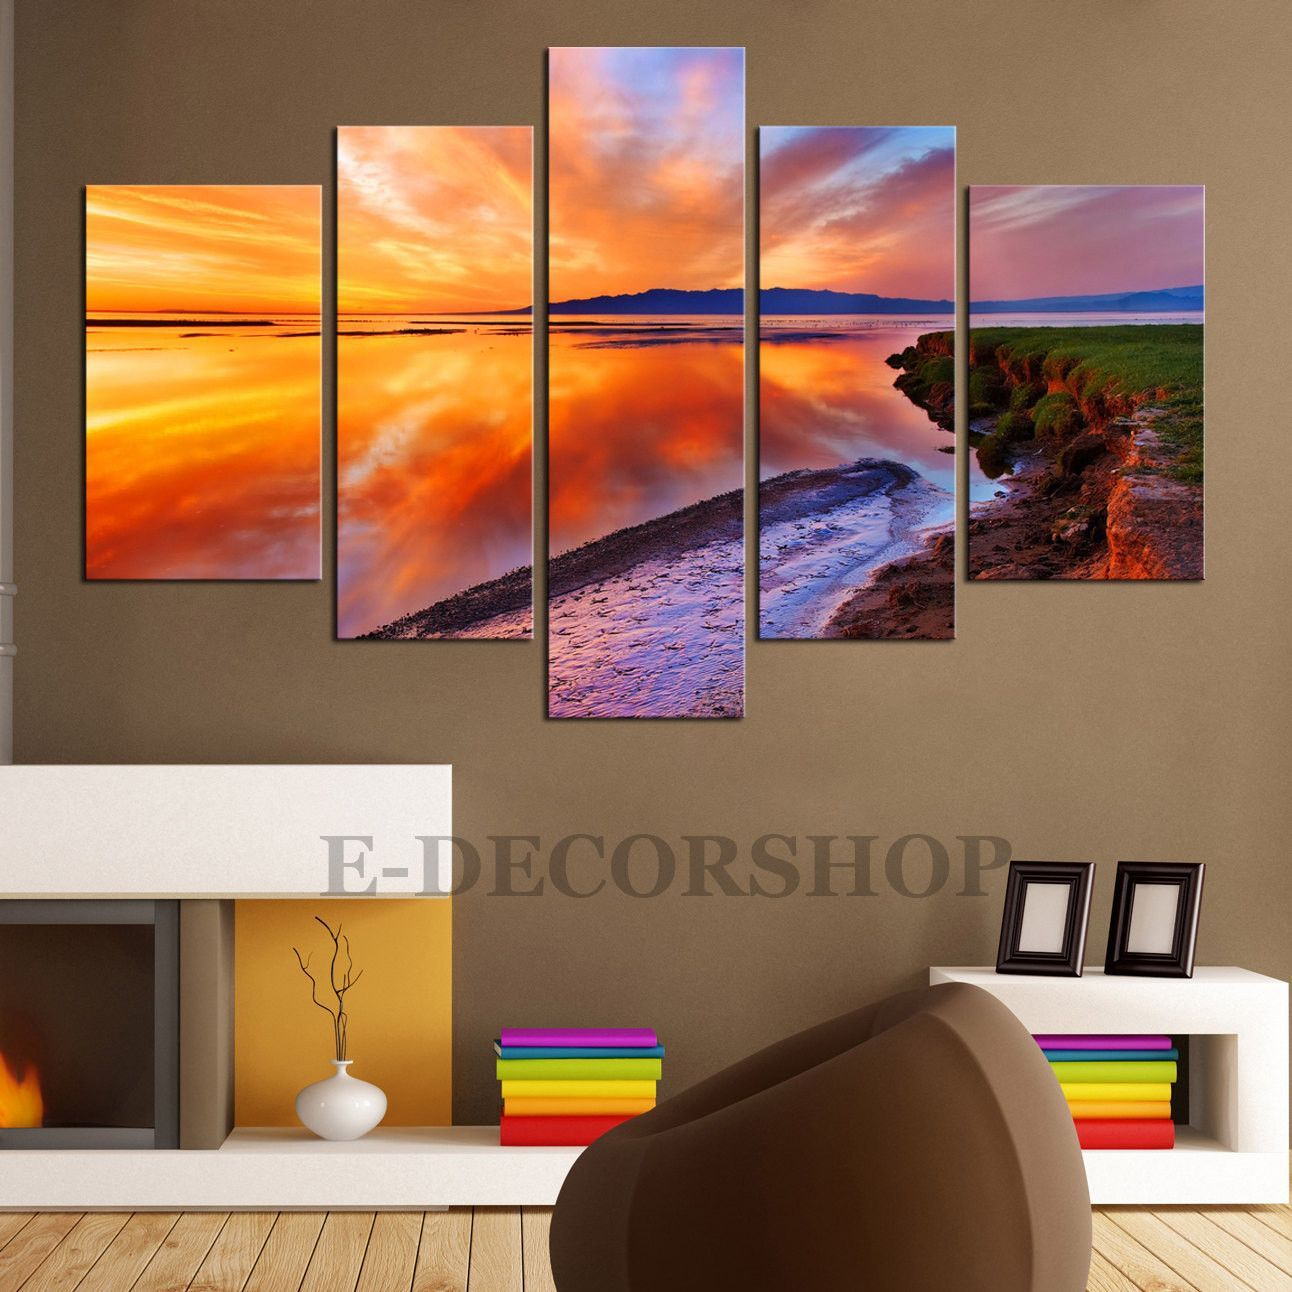 LARGE CANVAS Wall Art Sunset 5 Piece Canvas Art Print